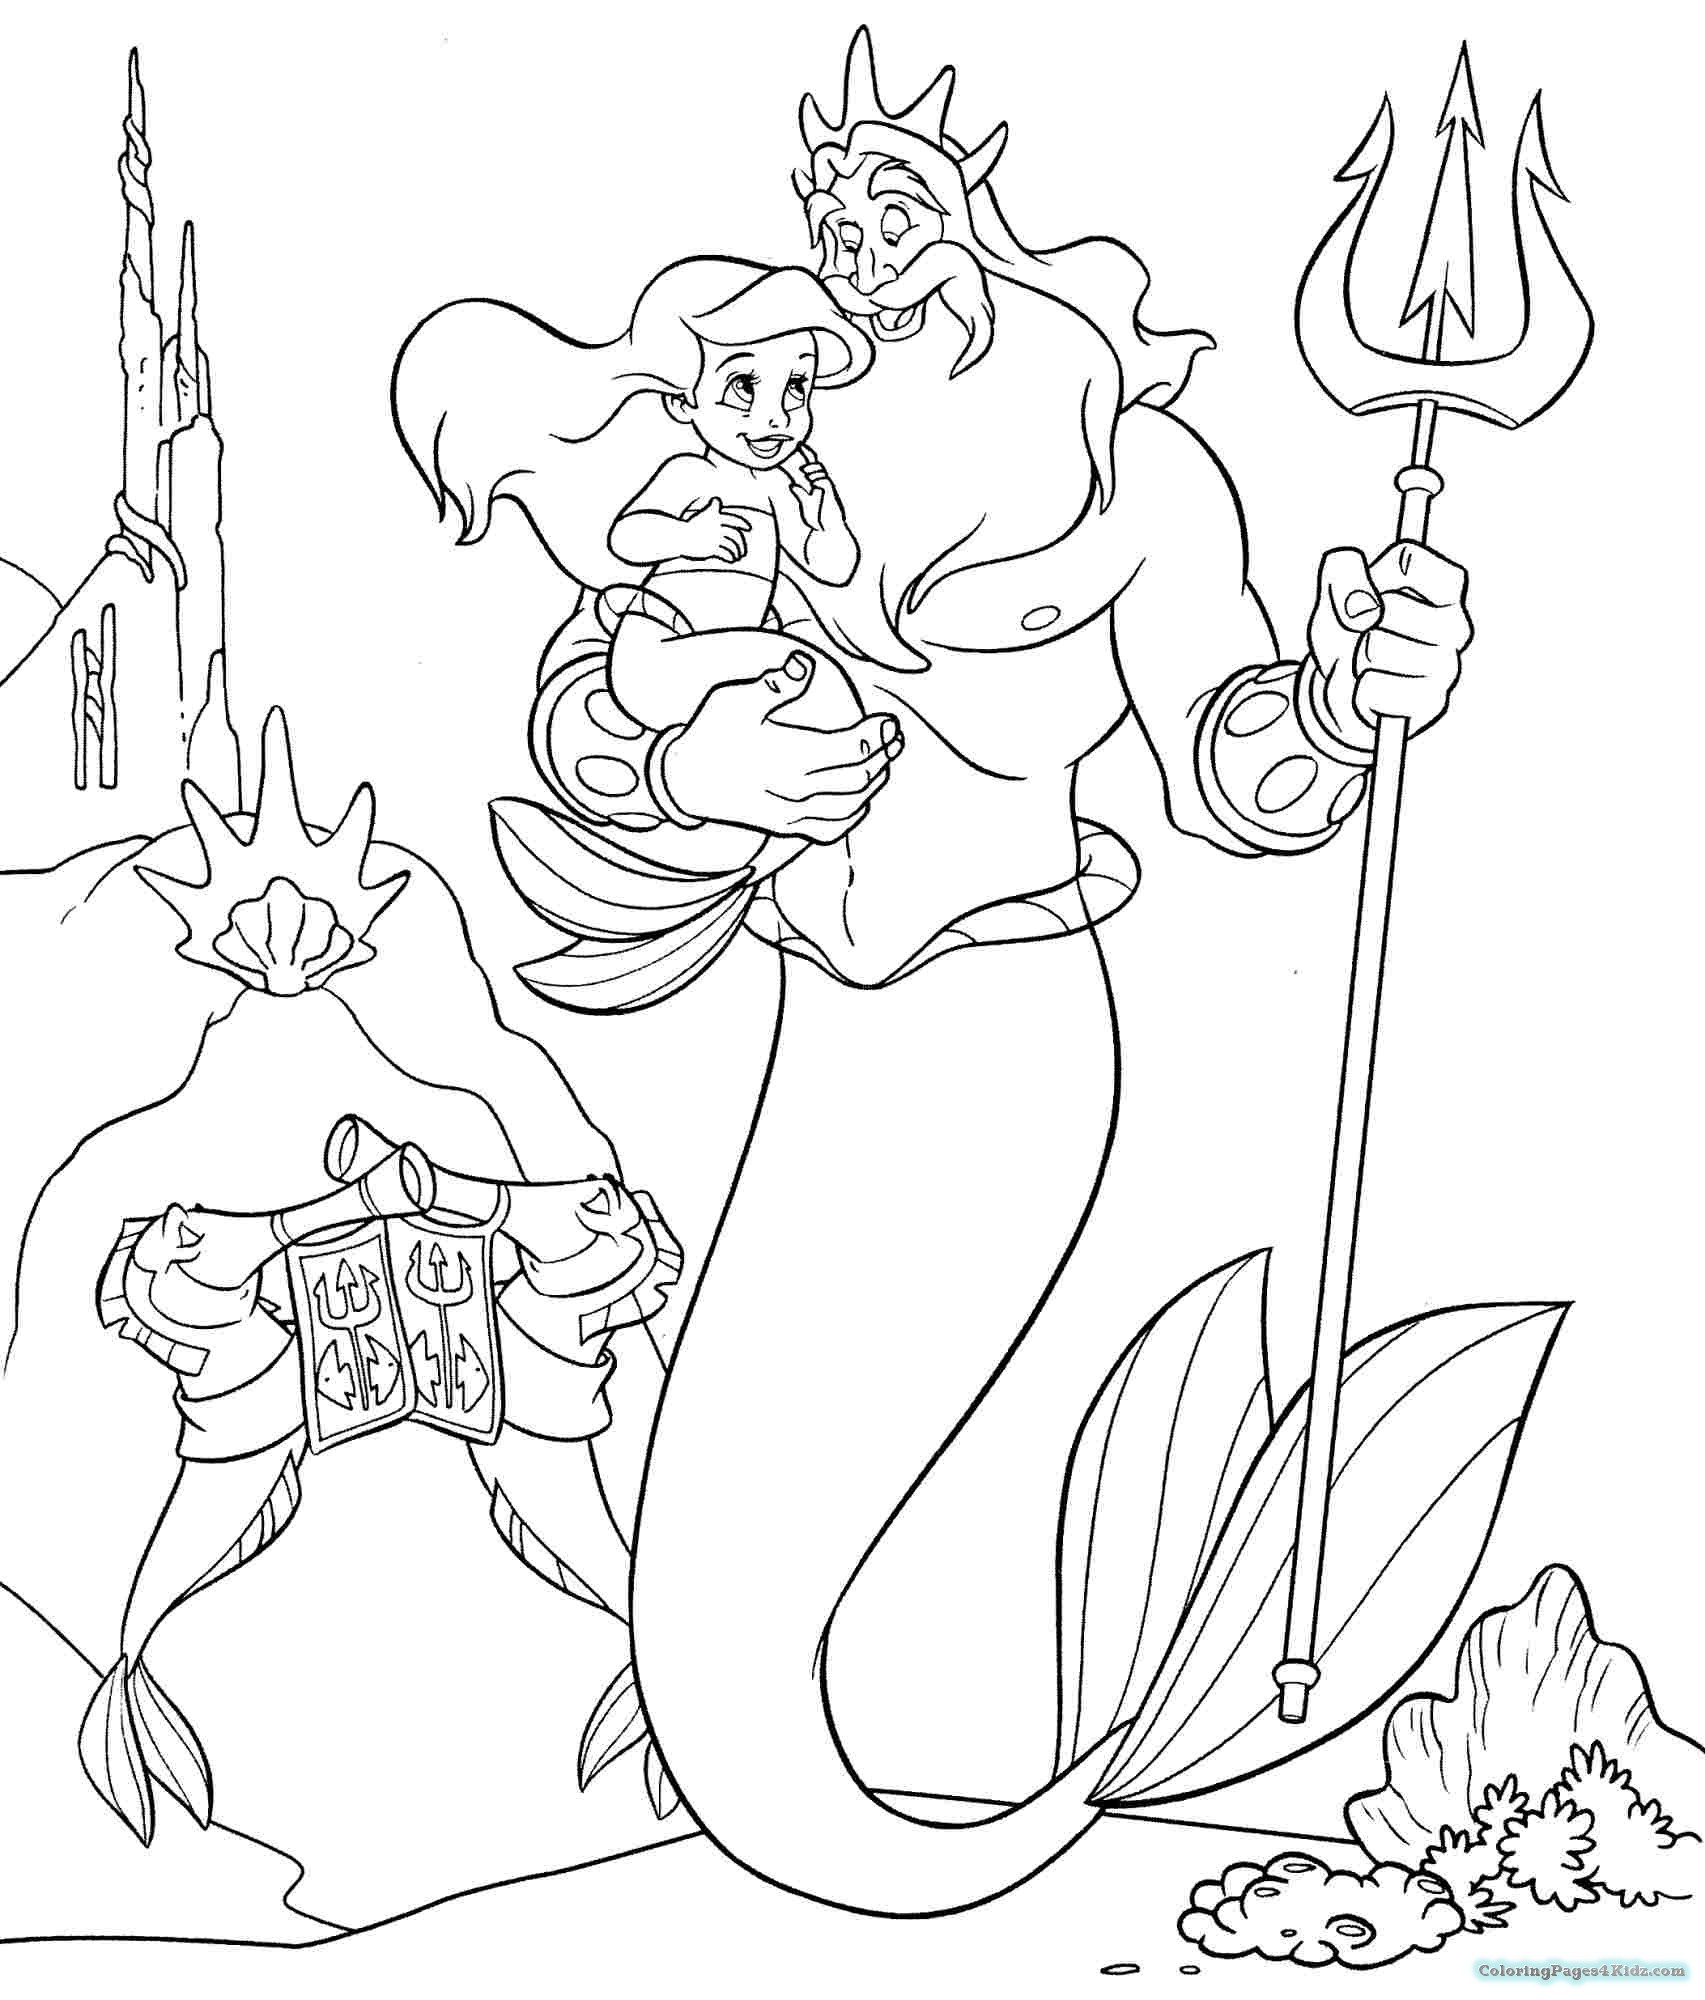 ariel disney coloring princess ariel little mermaid coloring pages coloring ariel disney